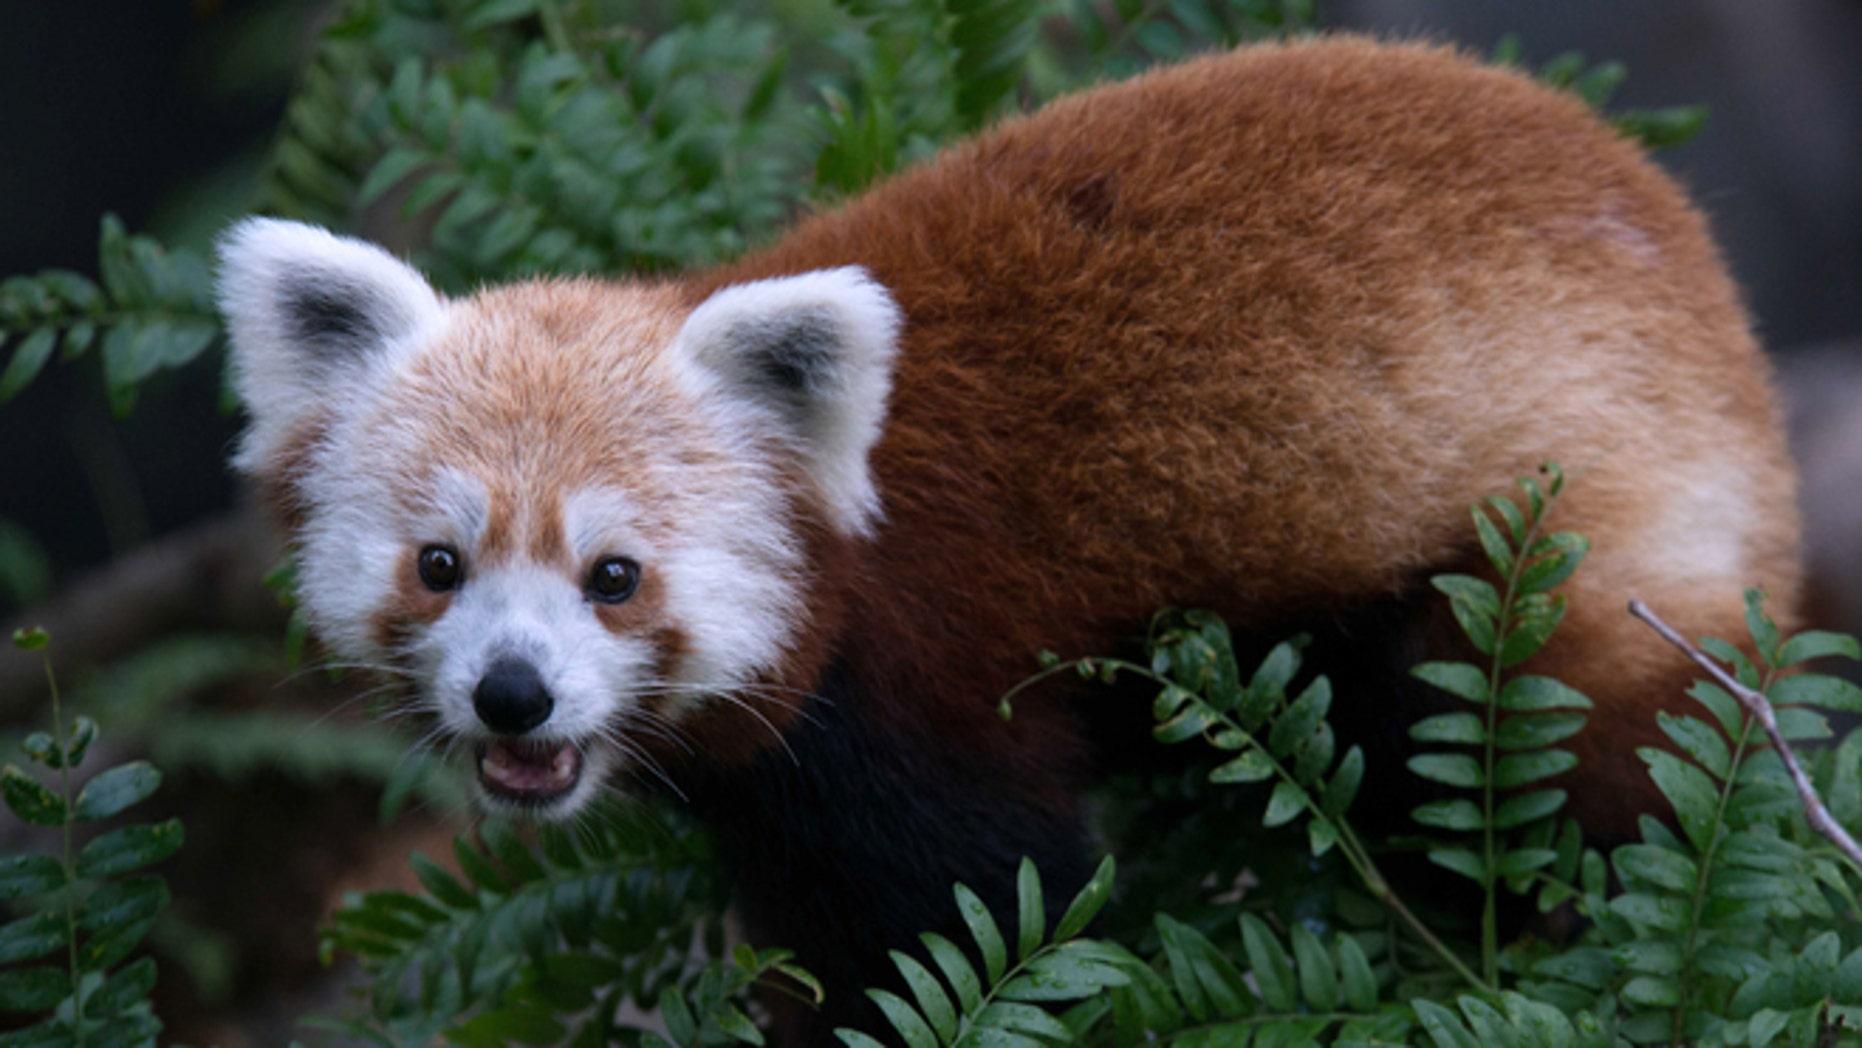 This undated handout photo provided by the National Zoo shows a red panda that escaped from its enclosure at the zoo in Washington in June 2013 and was later found in a nearby neighborhood.